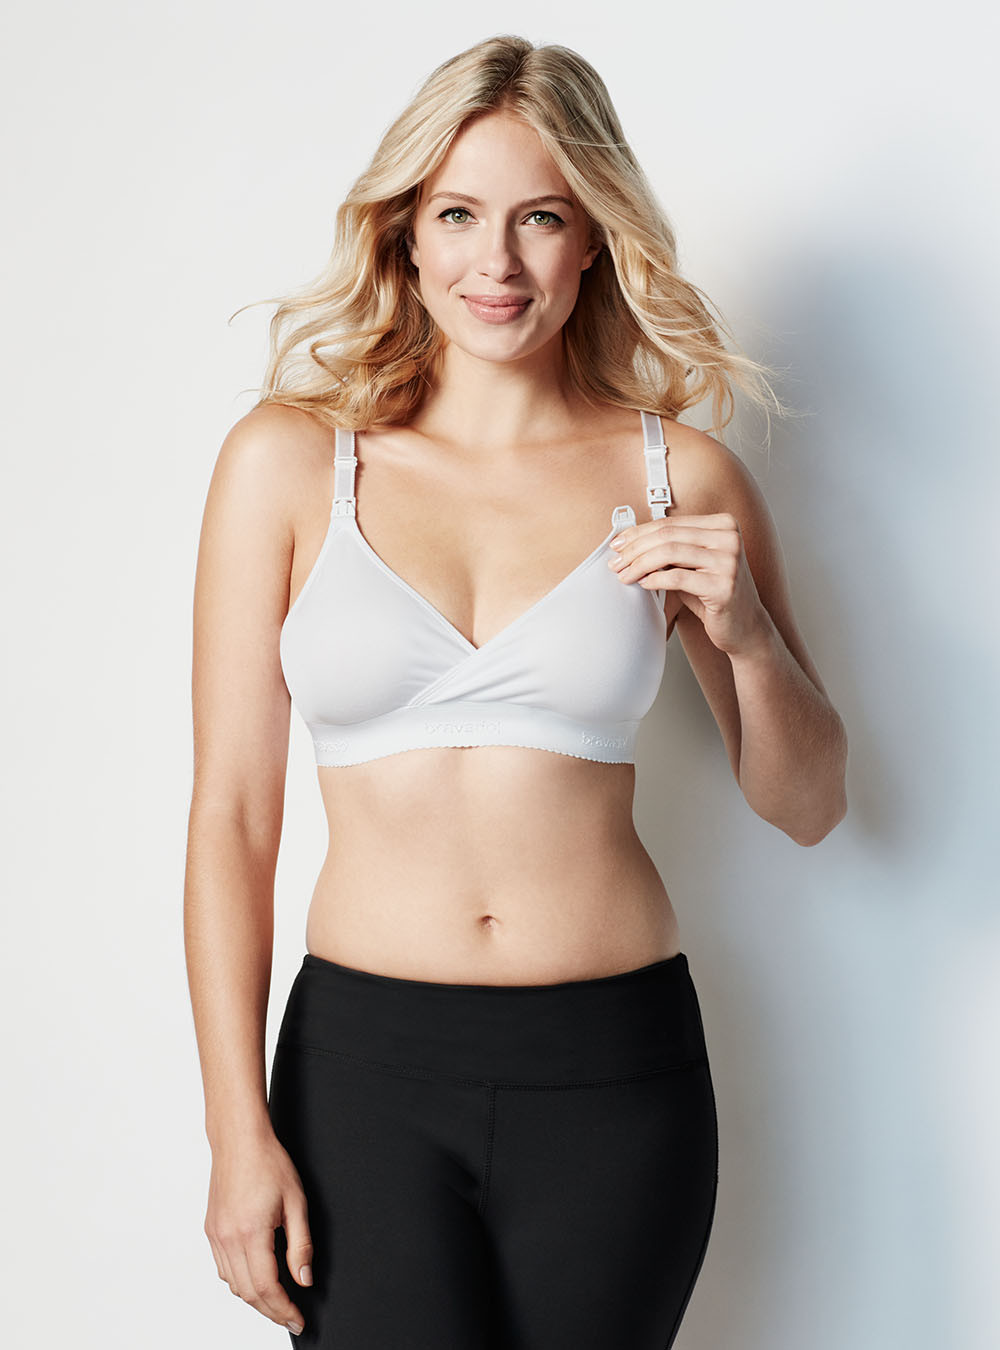 b3a038caaf Original Nursing Bra by Bravado Designs